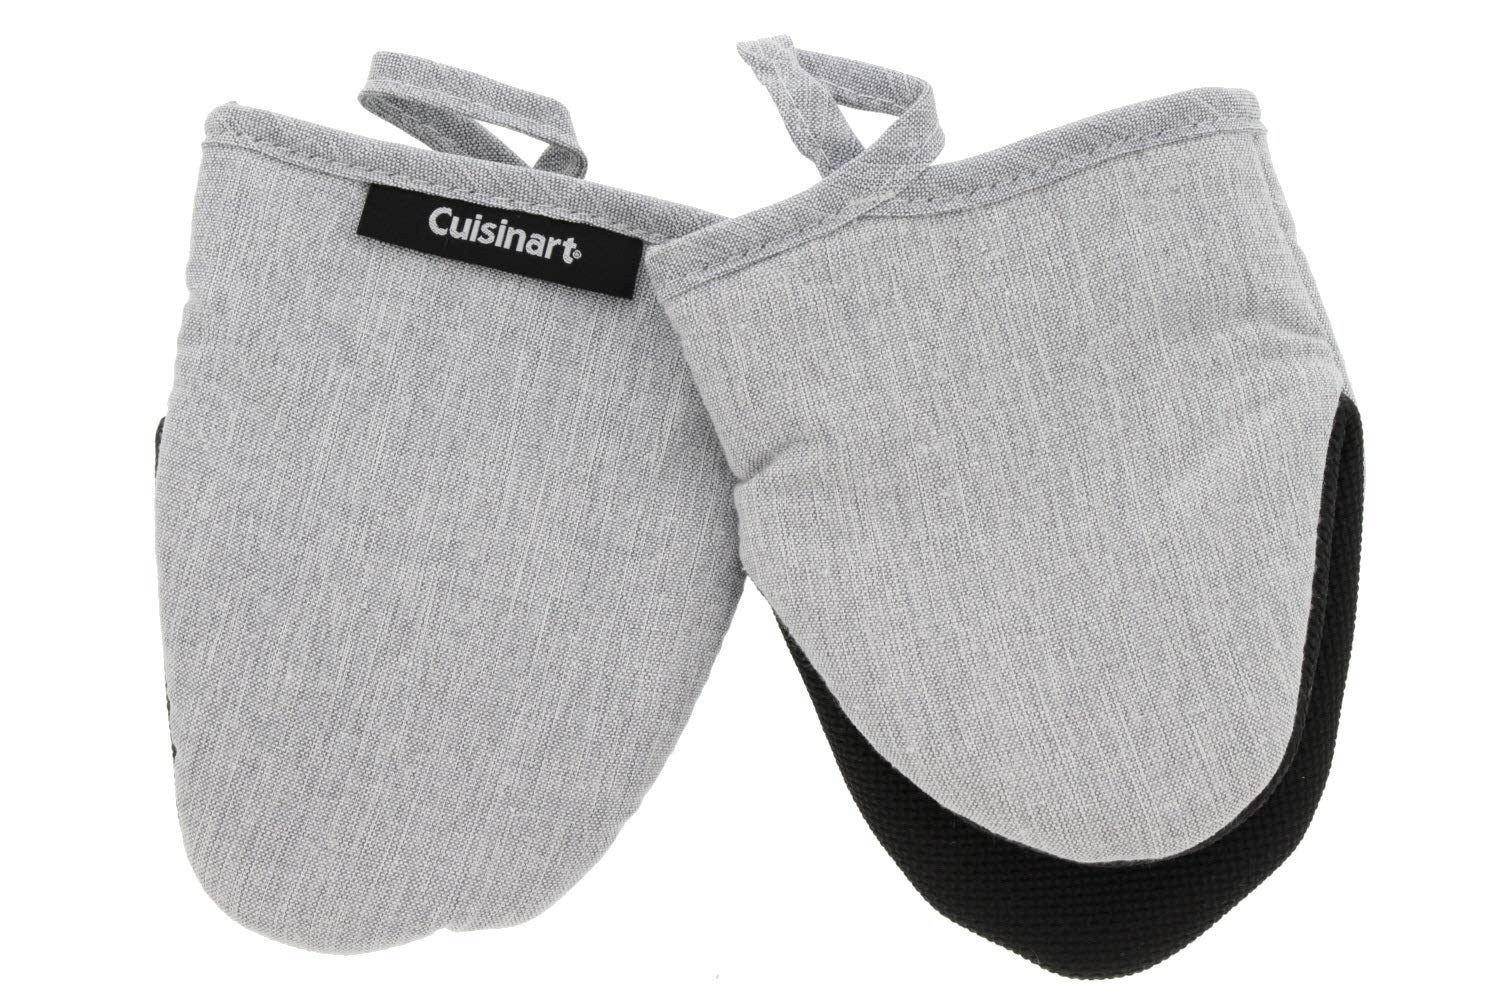 Cuisinart Mini Oven Mitts w/Neoprene for Easy Gripping, Chambray Kitchen Glove Accessory, Heat Resistant up to 500 Degrees F, 5.5 x 7 inches, Set of 2 – Light Grey